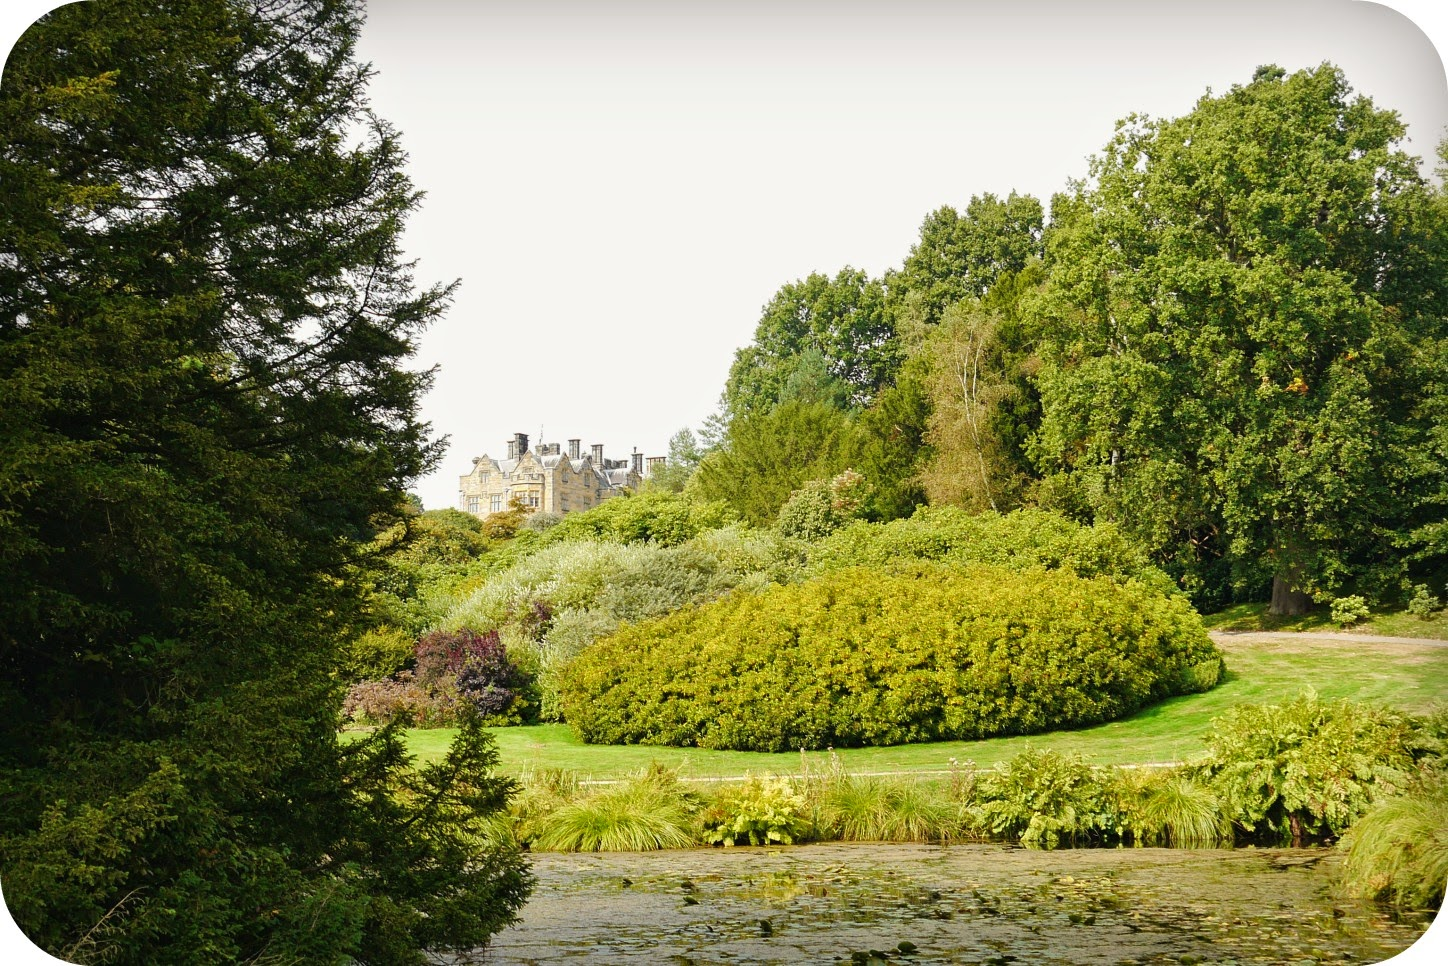 View to Scotney Castle house